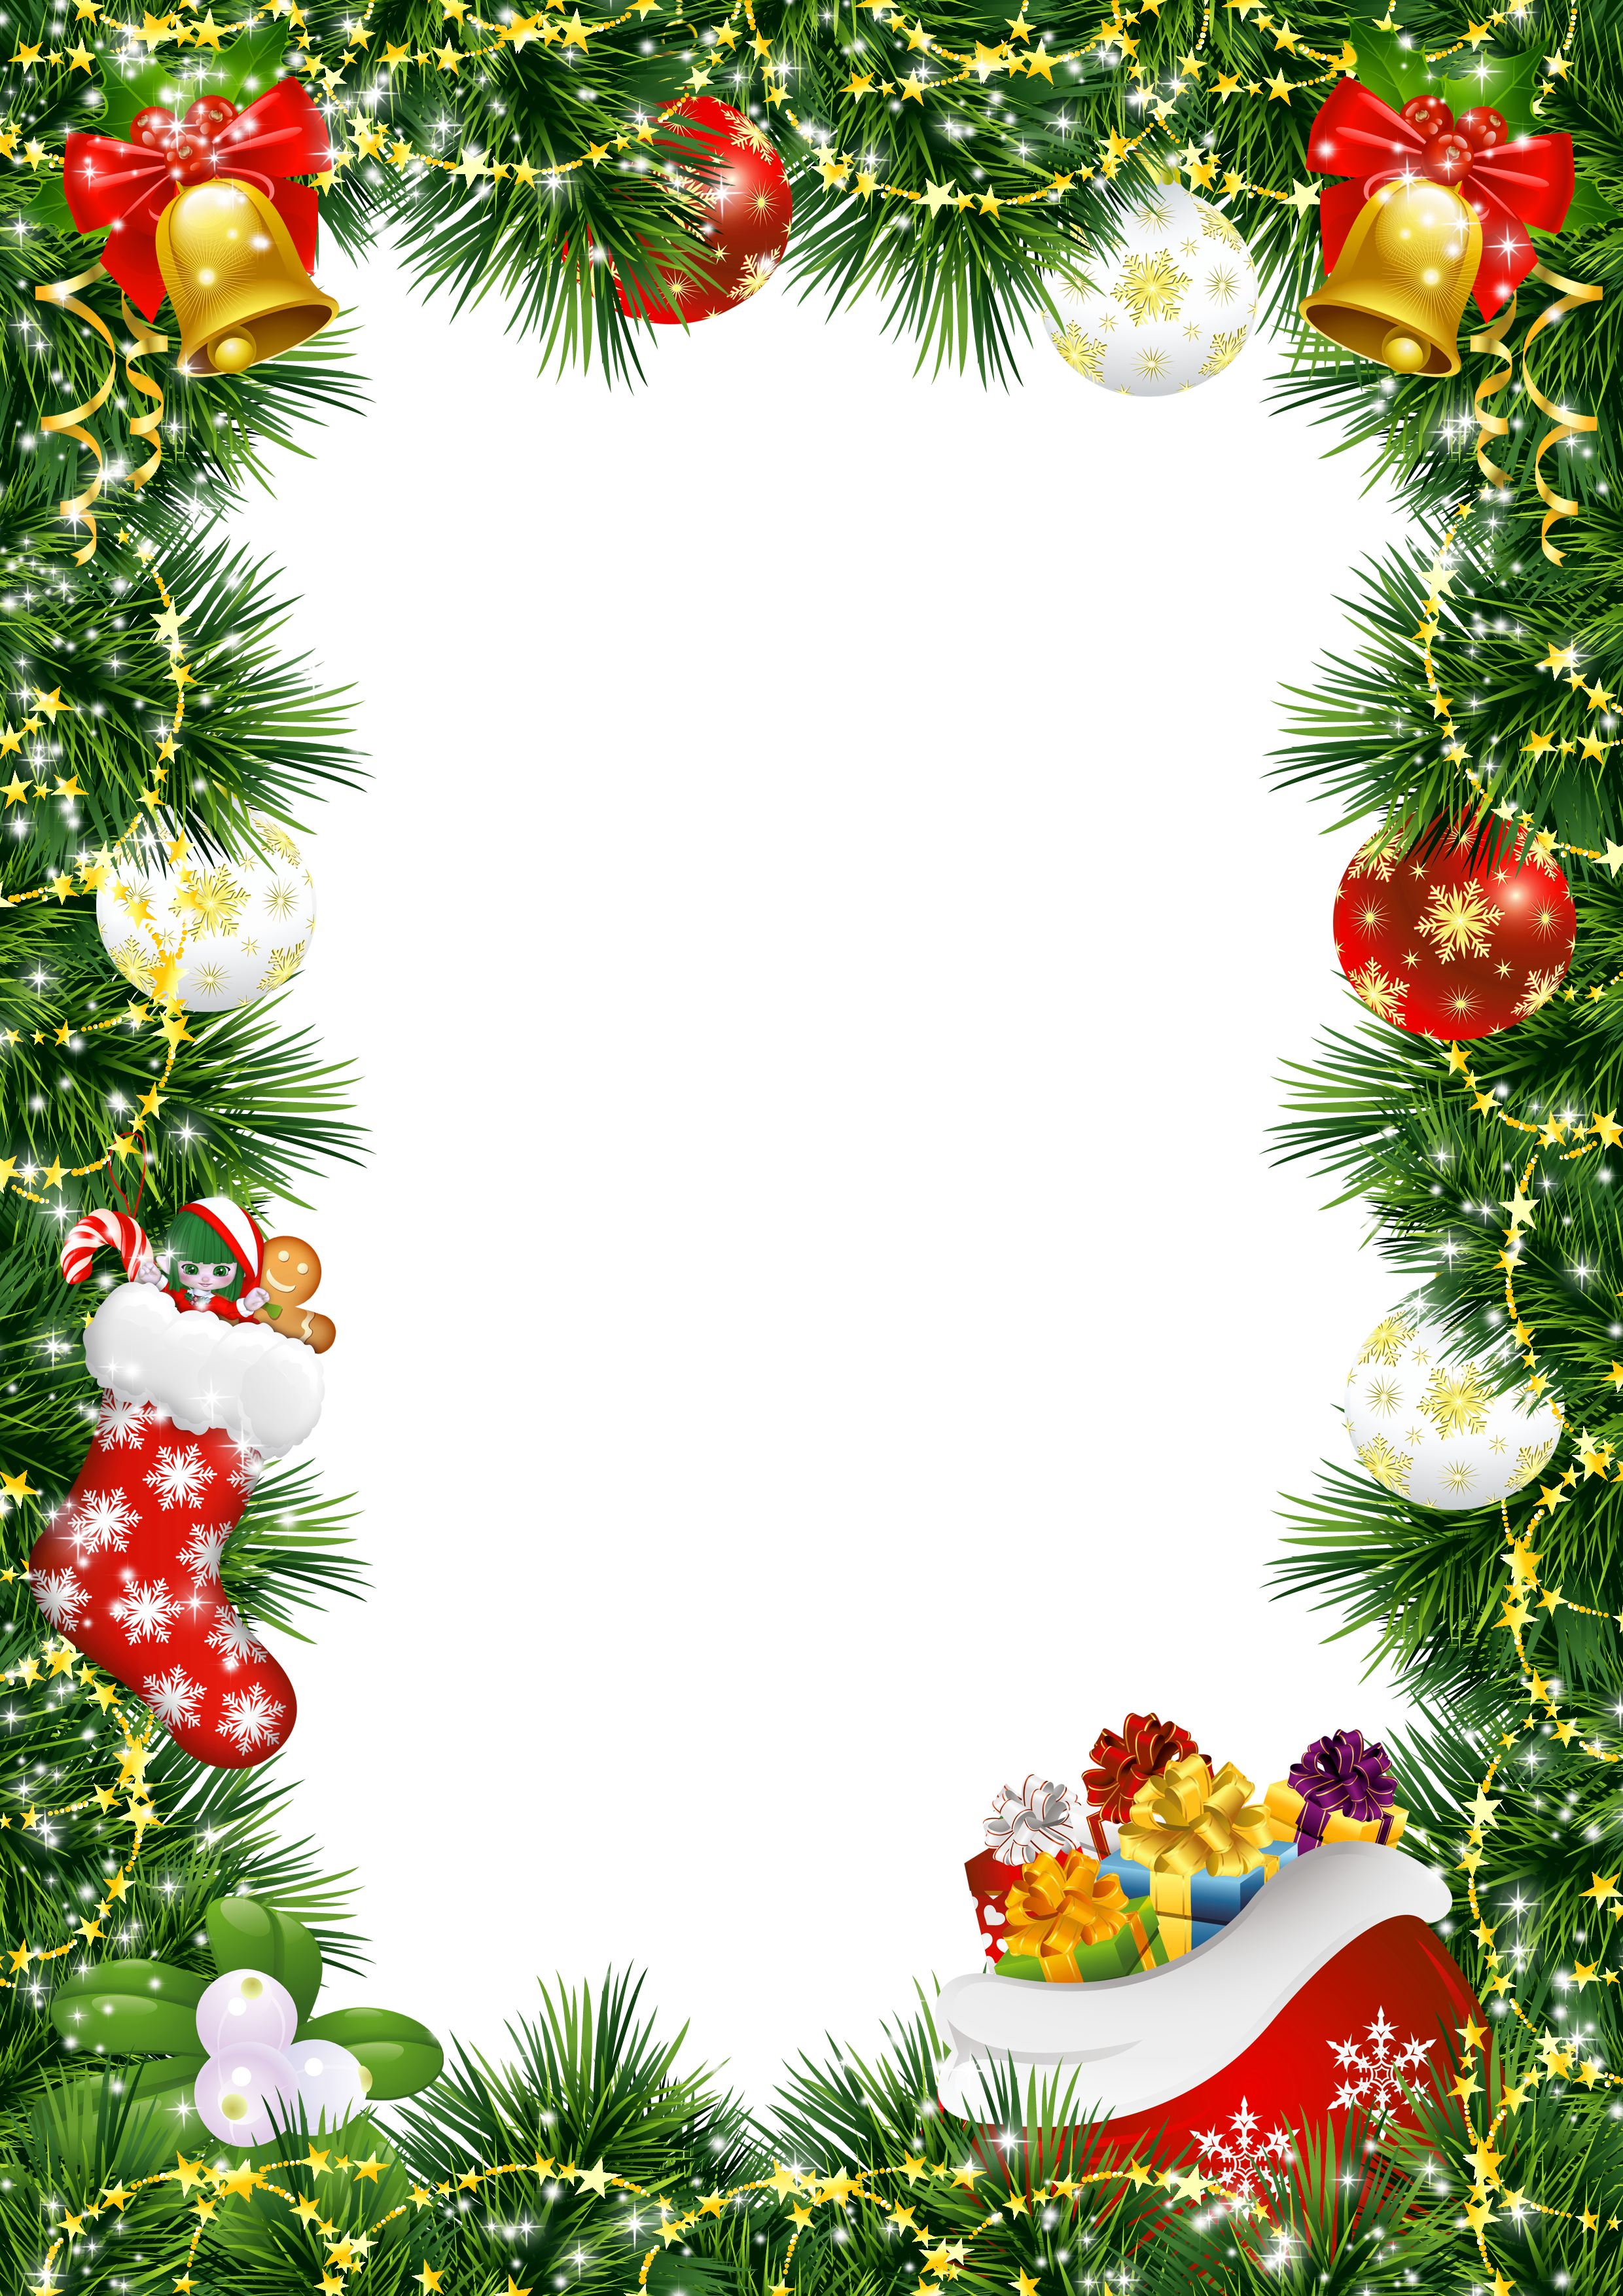 merry christmas frame png